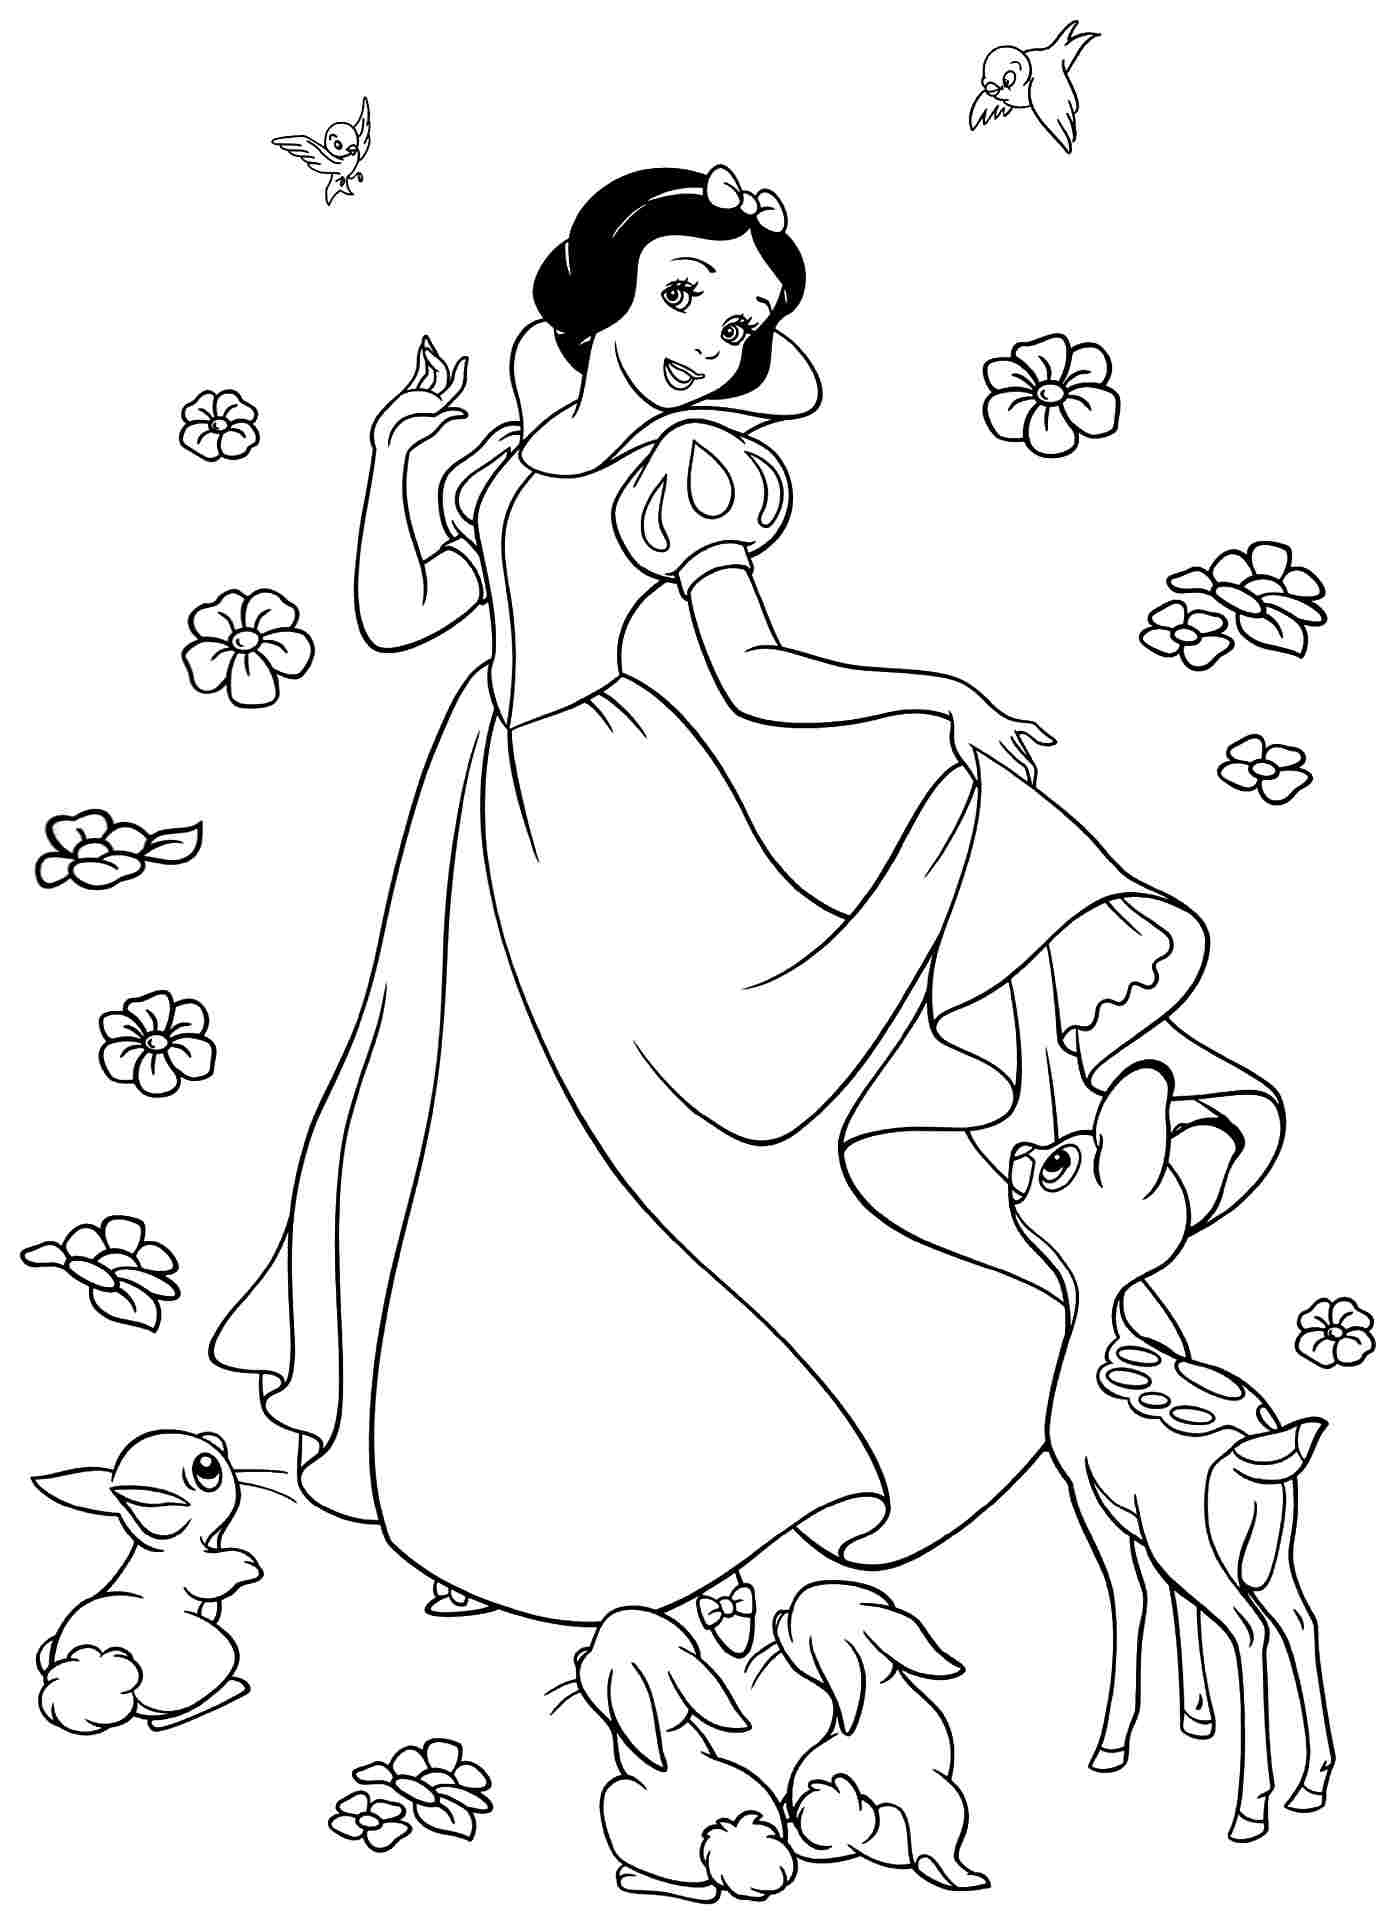 snow white color free printable snow white coloring pages for kids color snow white